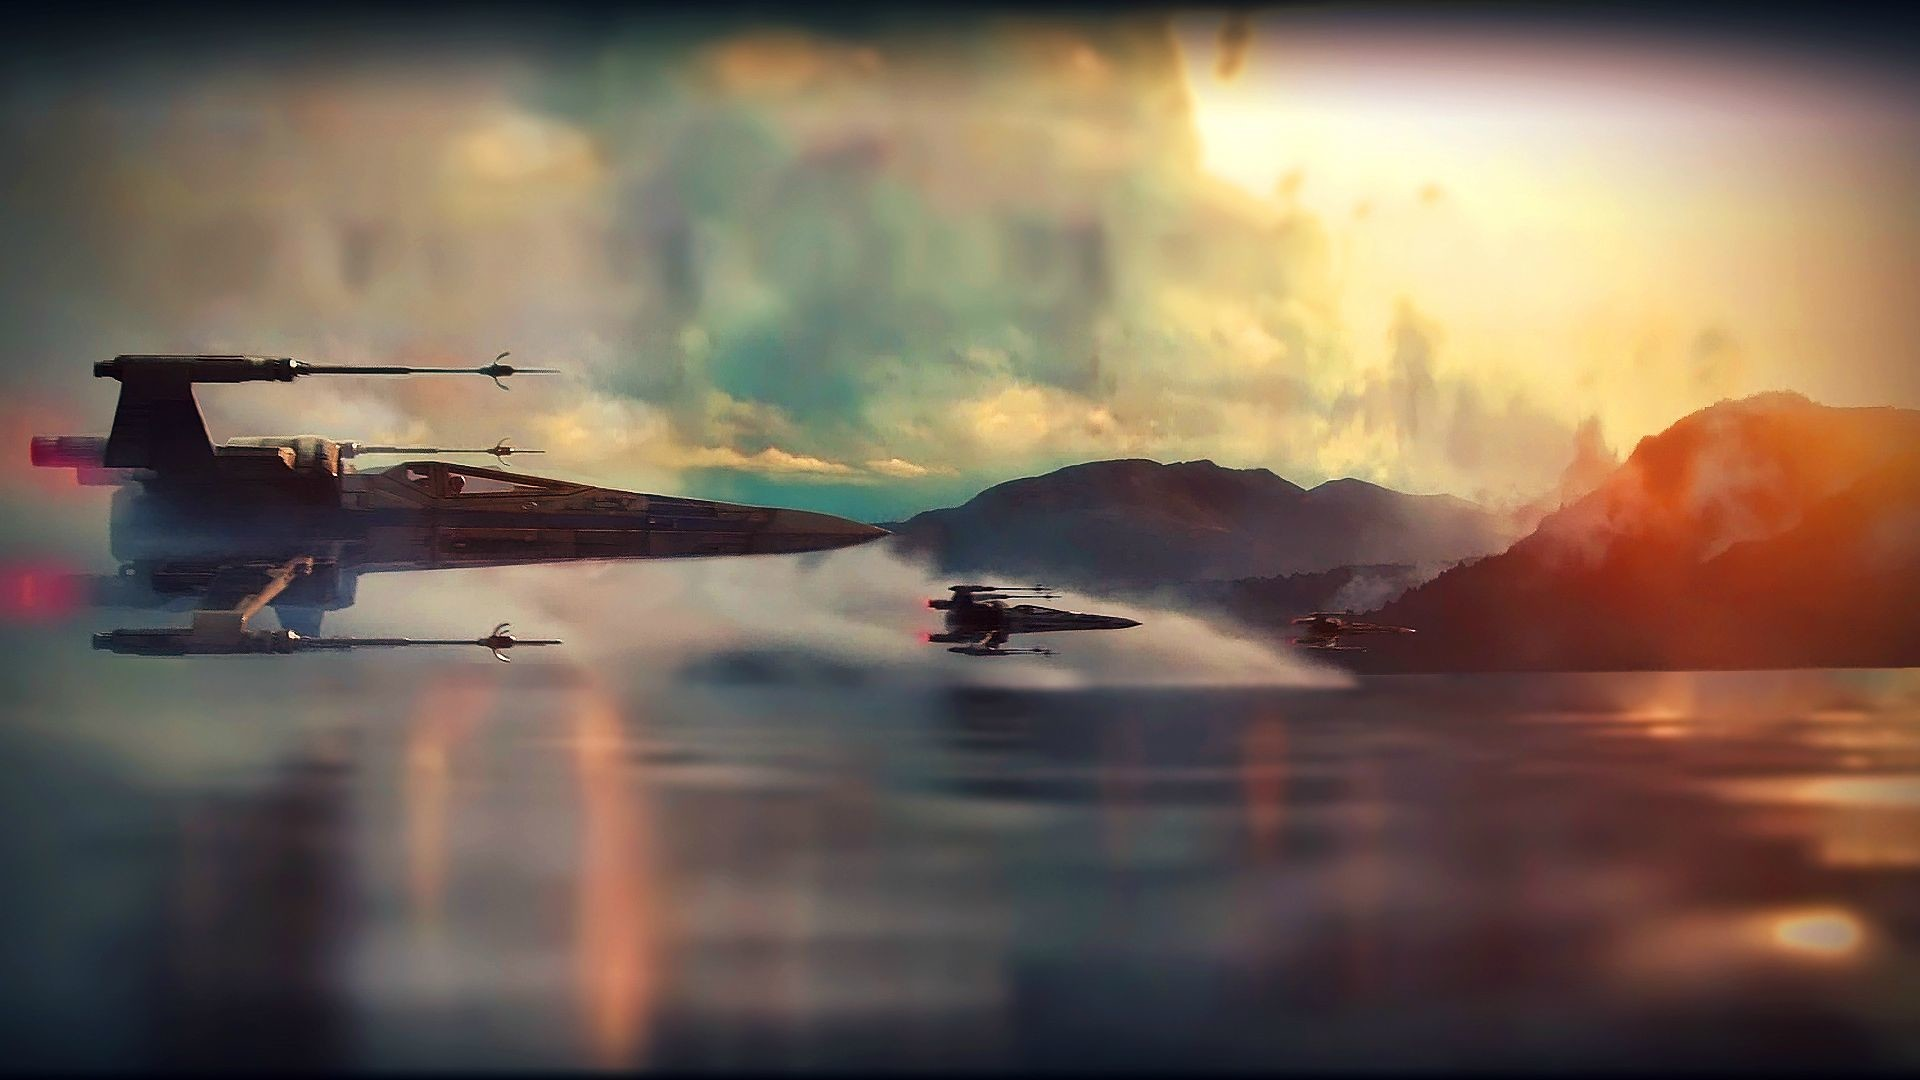 Star Wars Ep VII: The Force Awakens Teaser X-Wing Super Saturated/Colorful  Wallpaper …